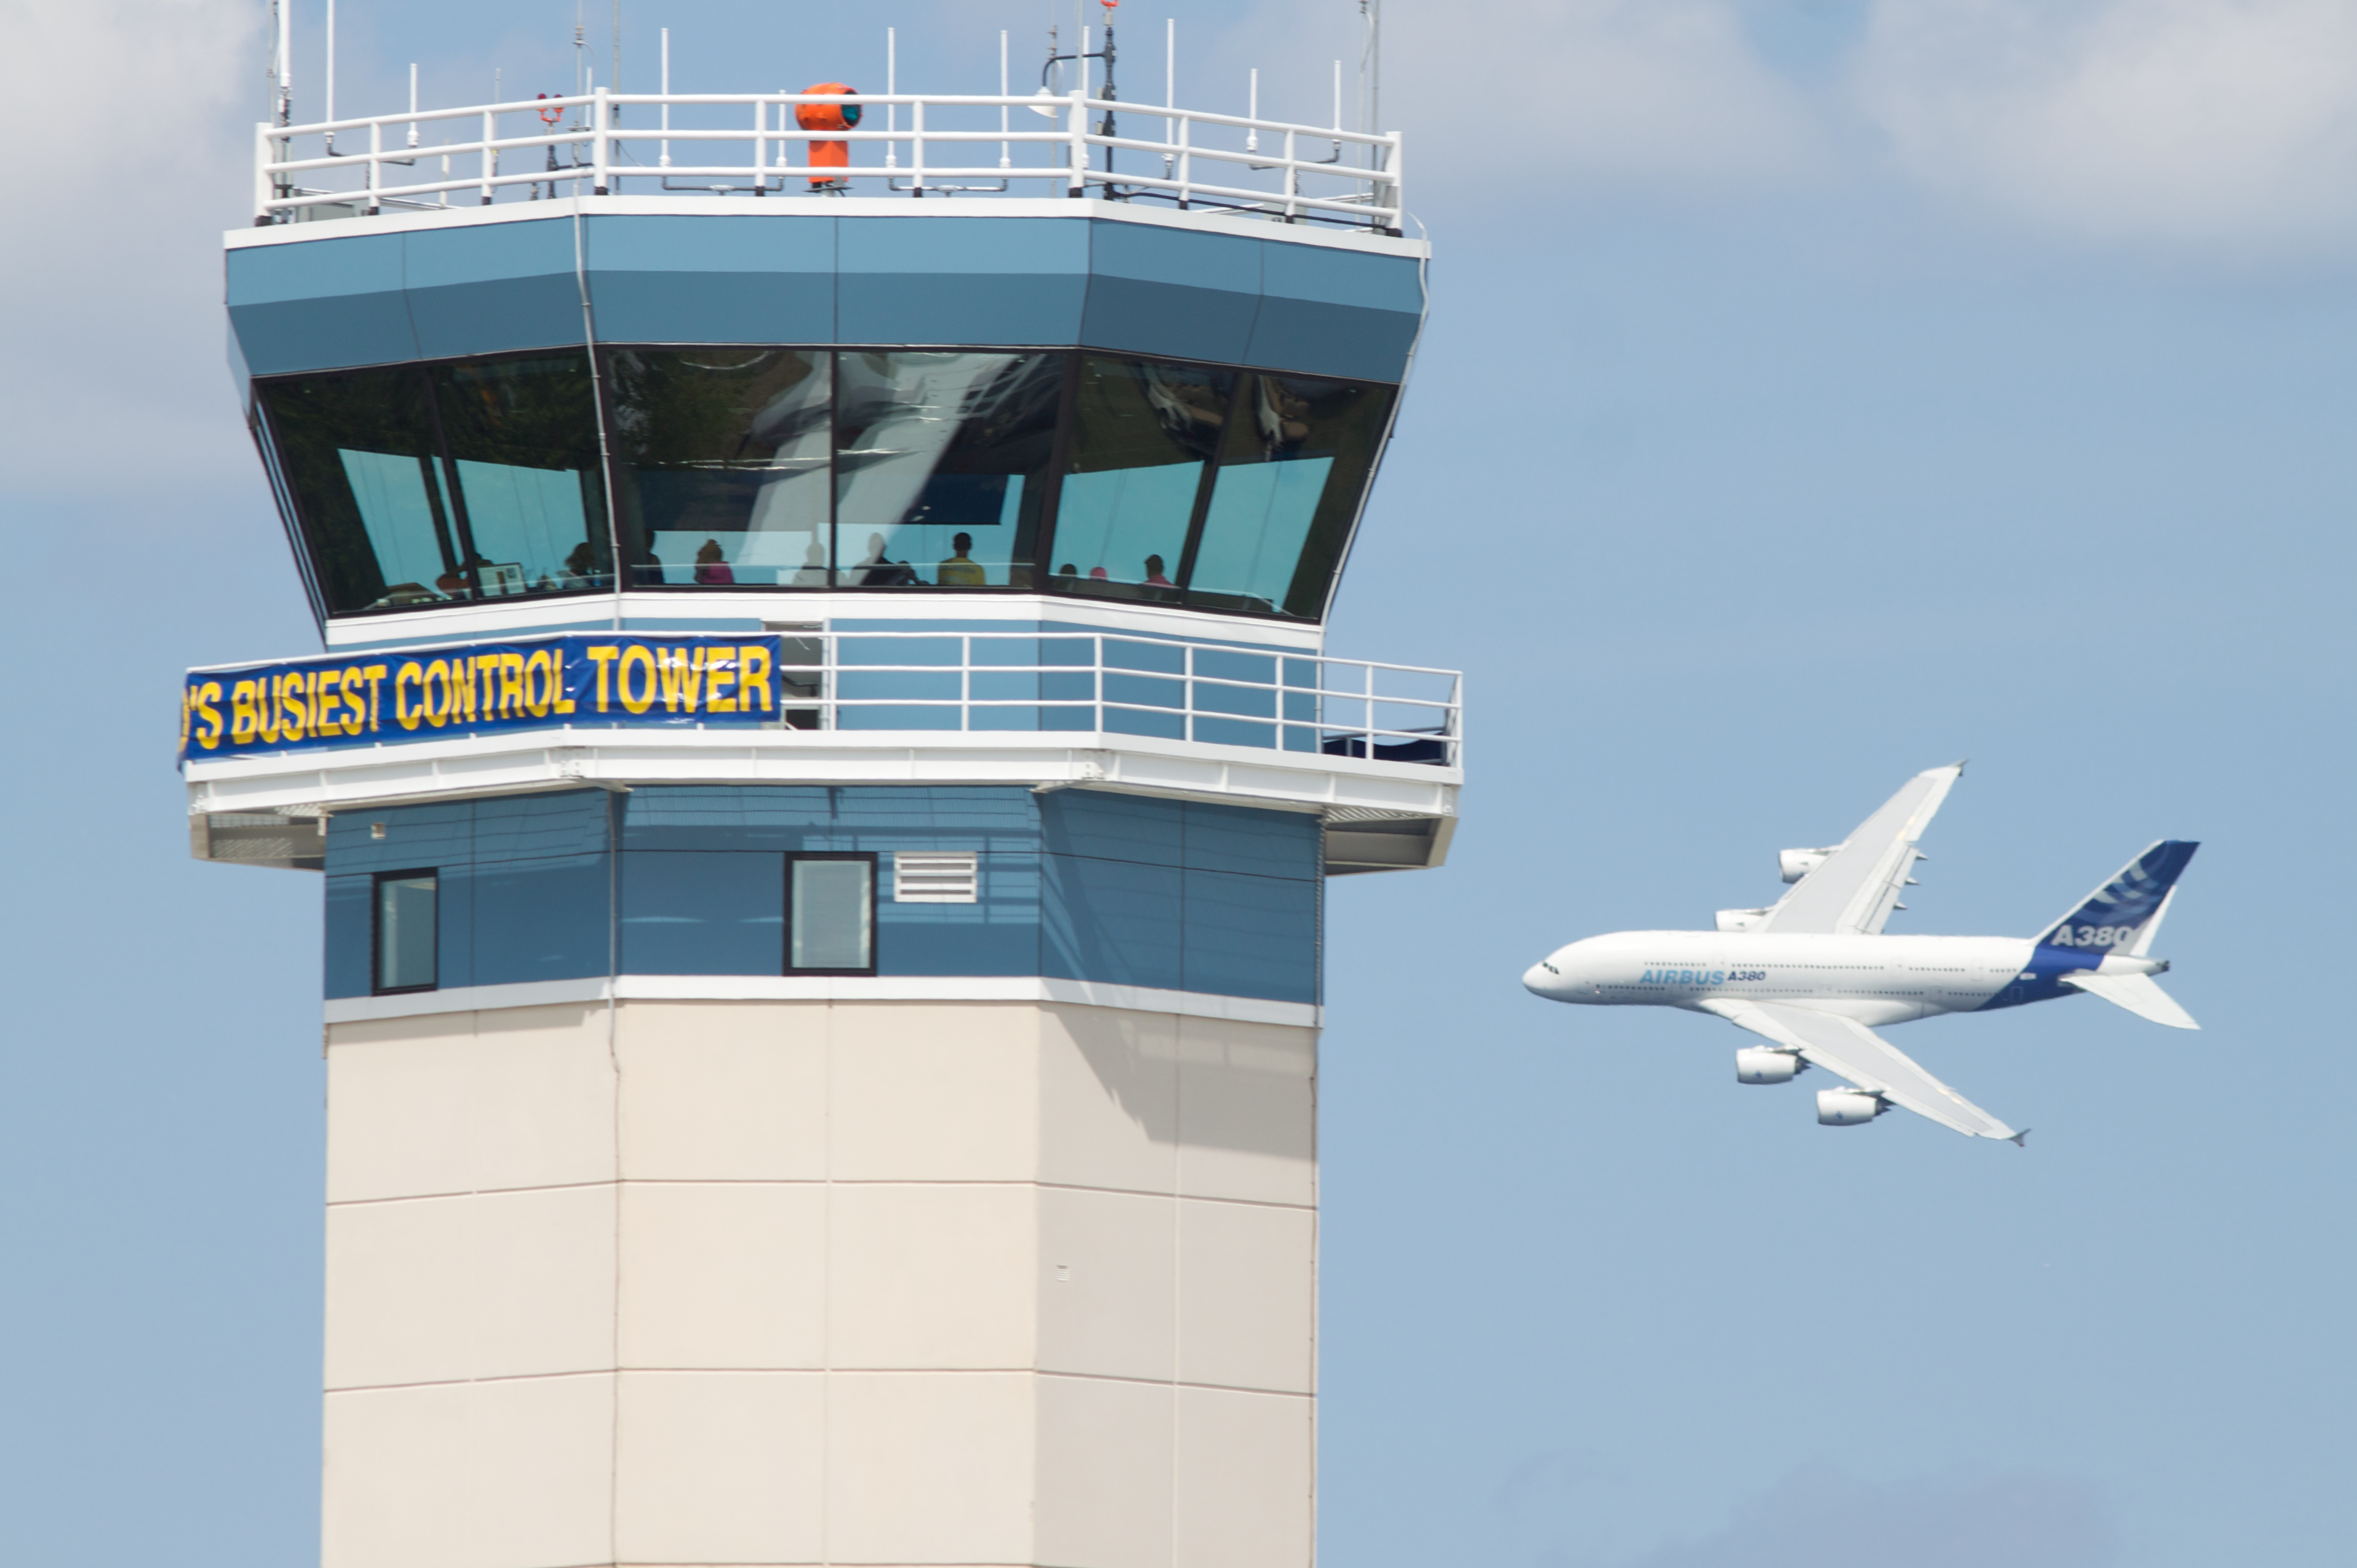 File:Worlds busiest control tower.jpg - Wikimedia Commons